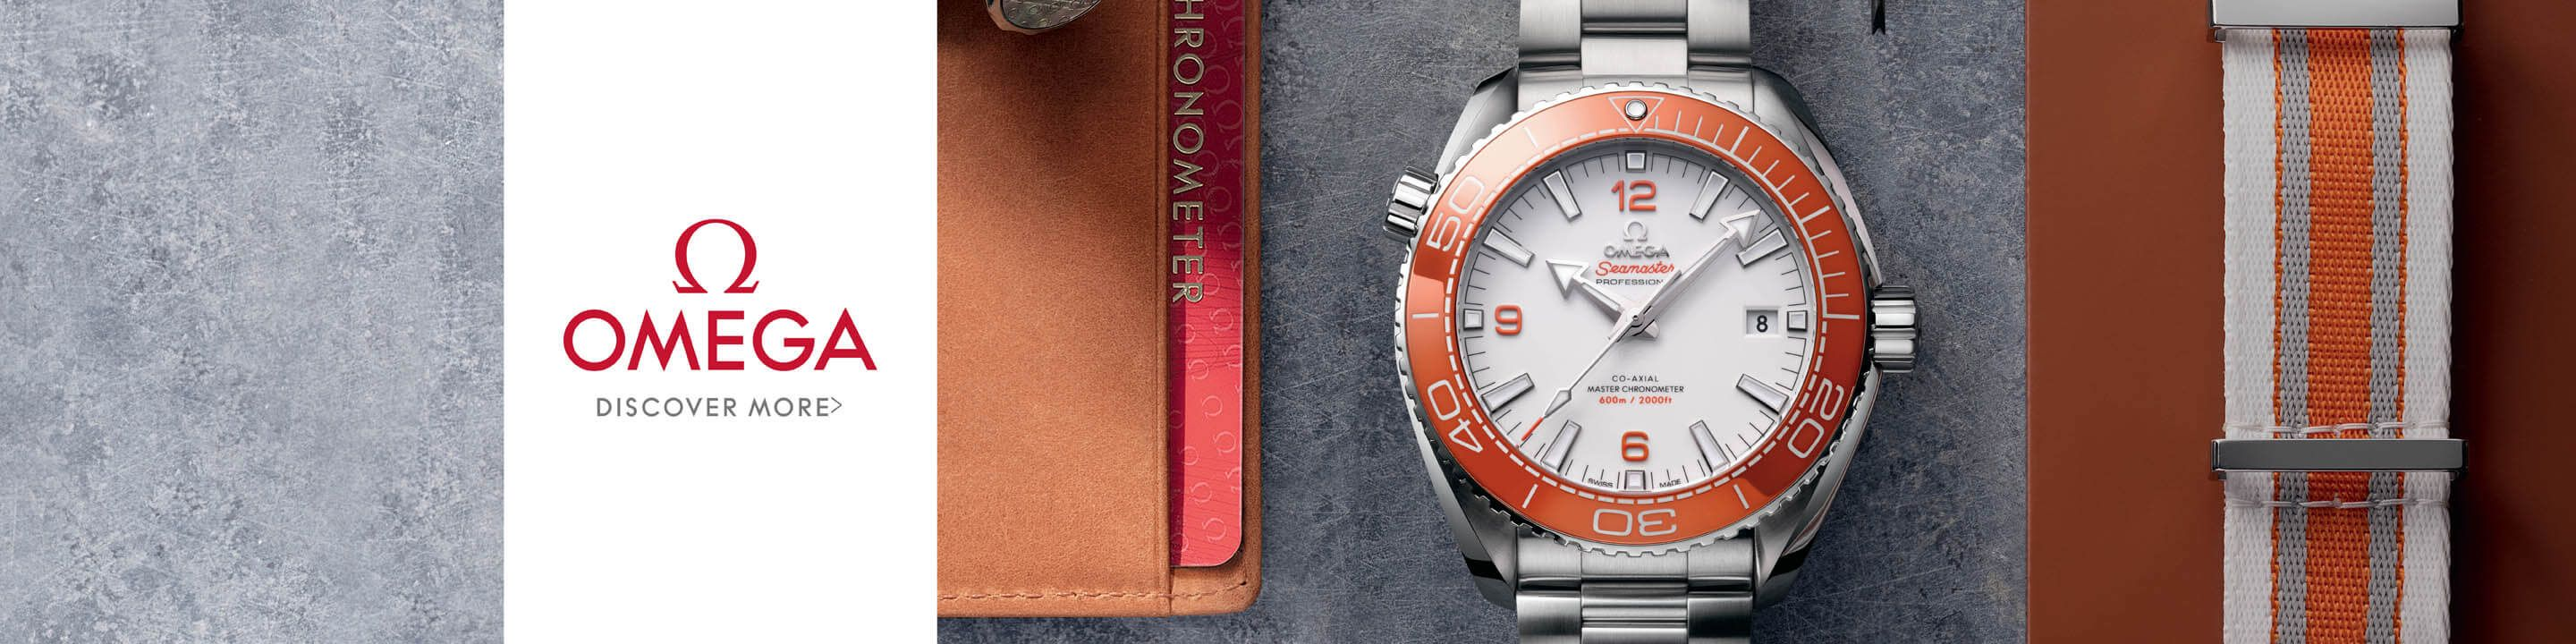 Omega Watches in India